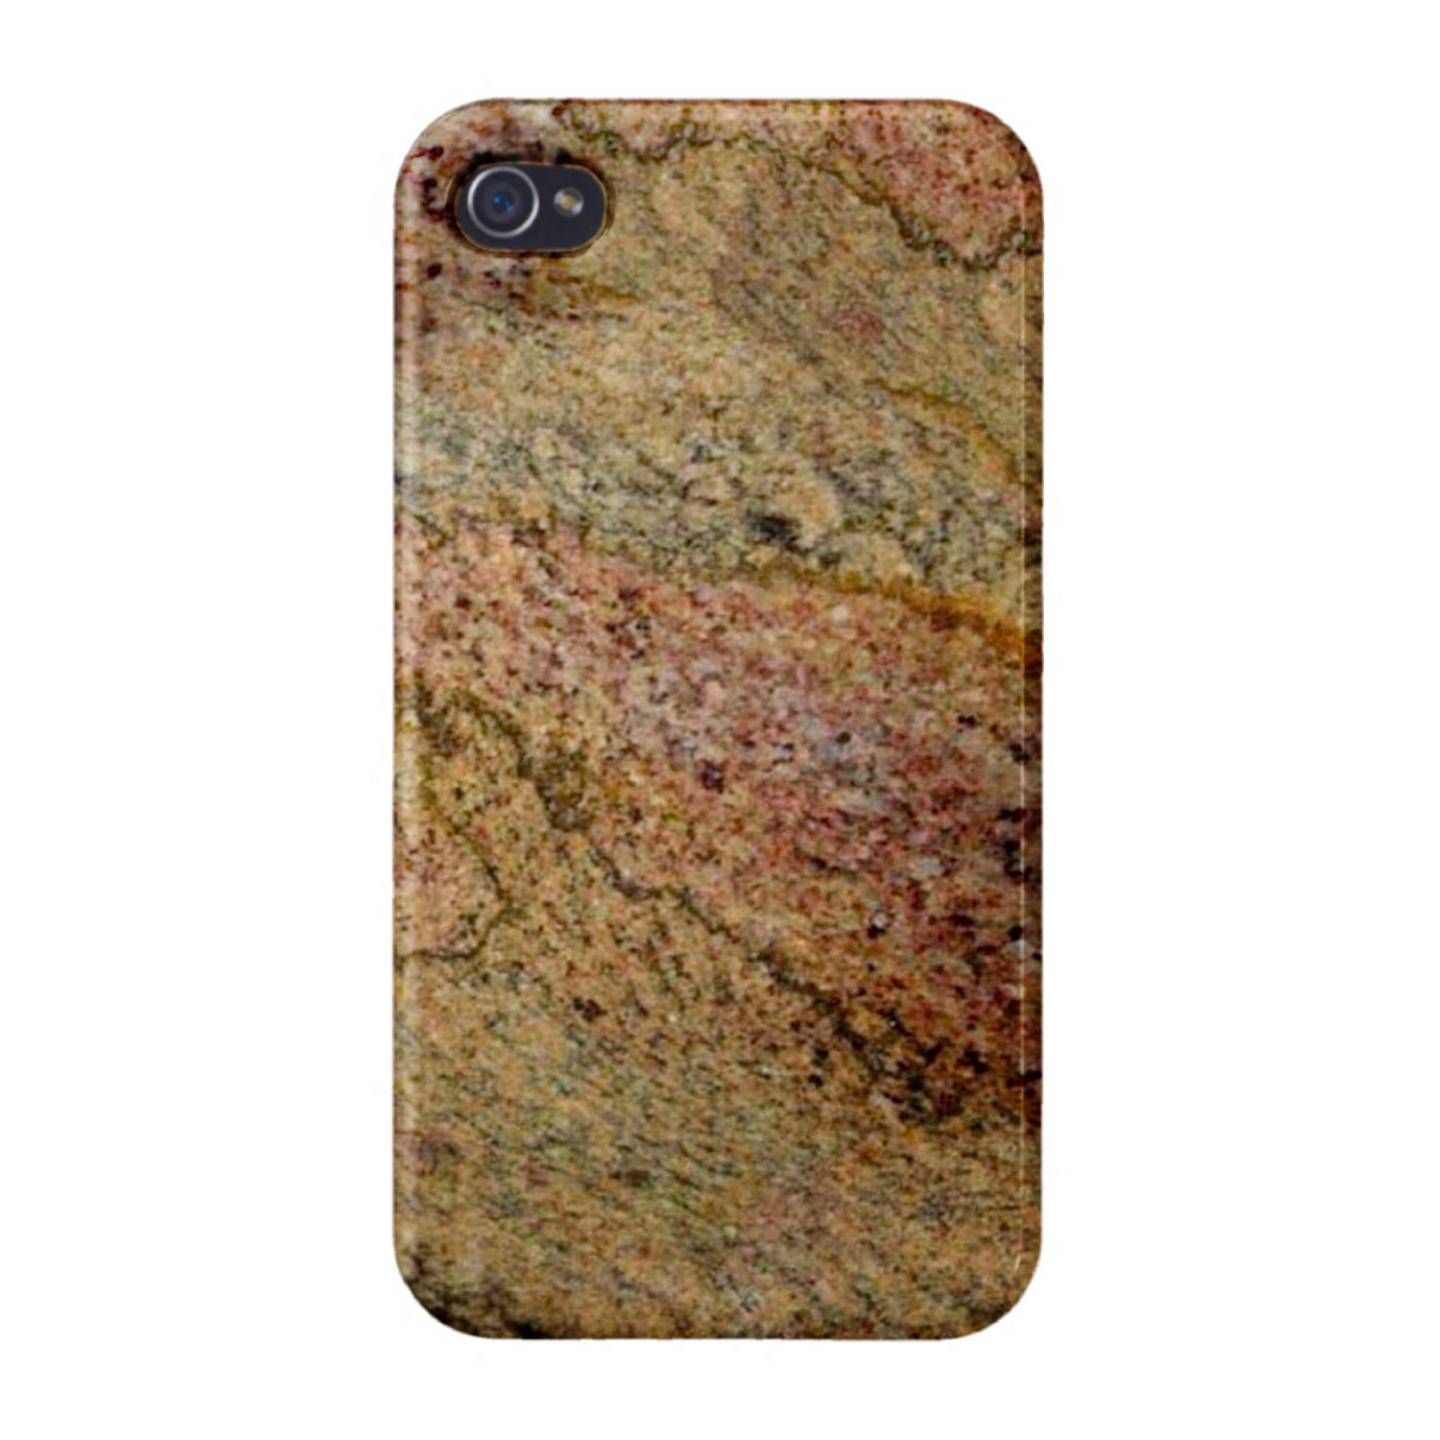 Avocado Brown Granite Marble Texture CUSTOM Cover Case Skin iPhone 4 ...